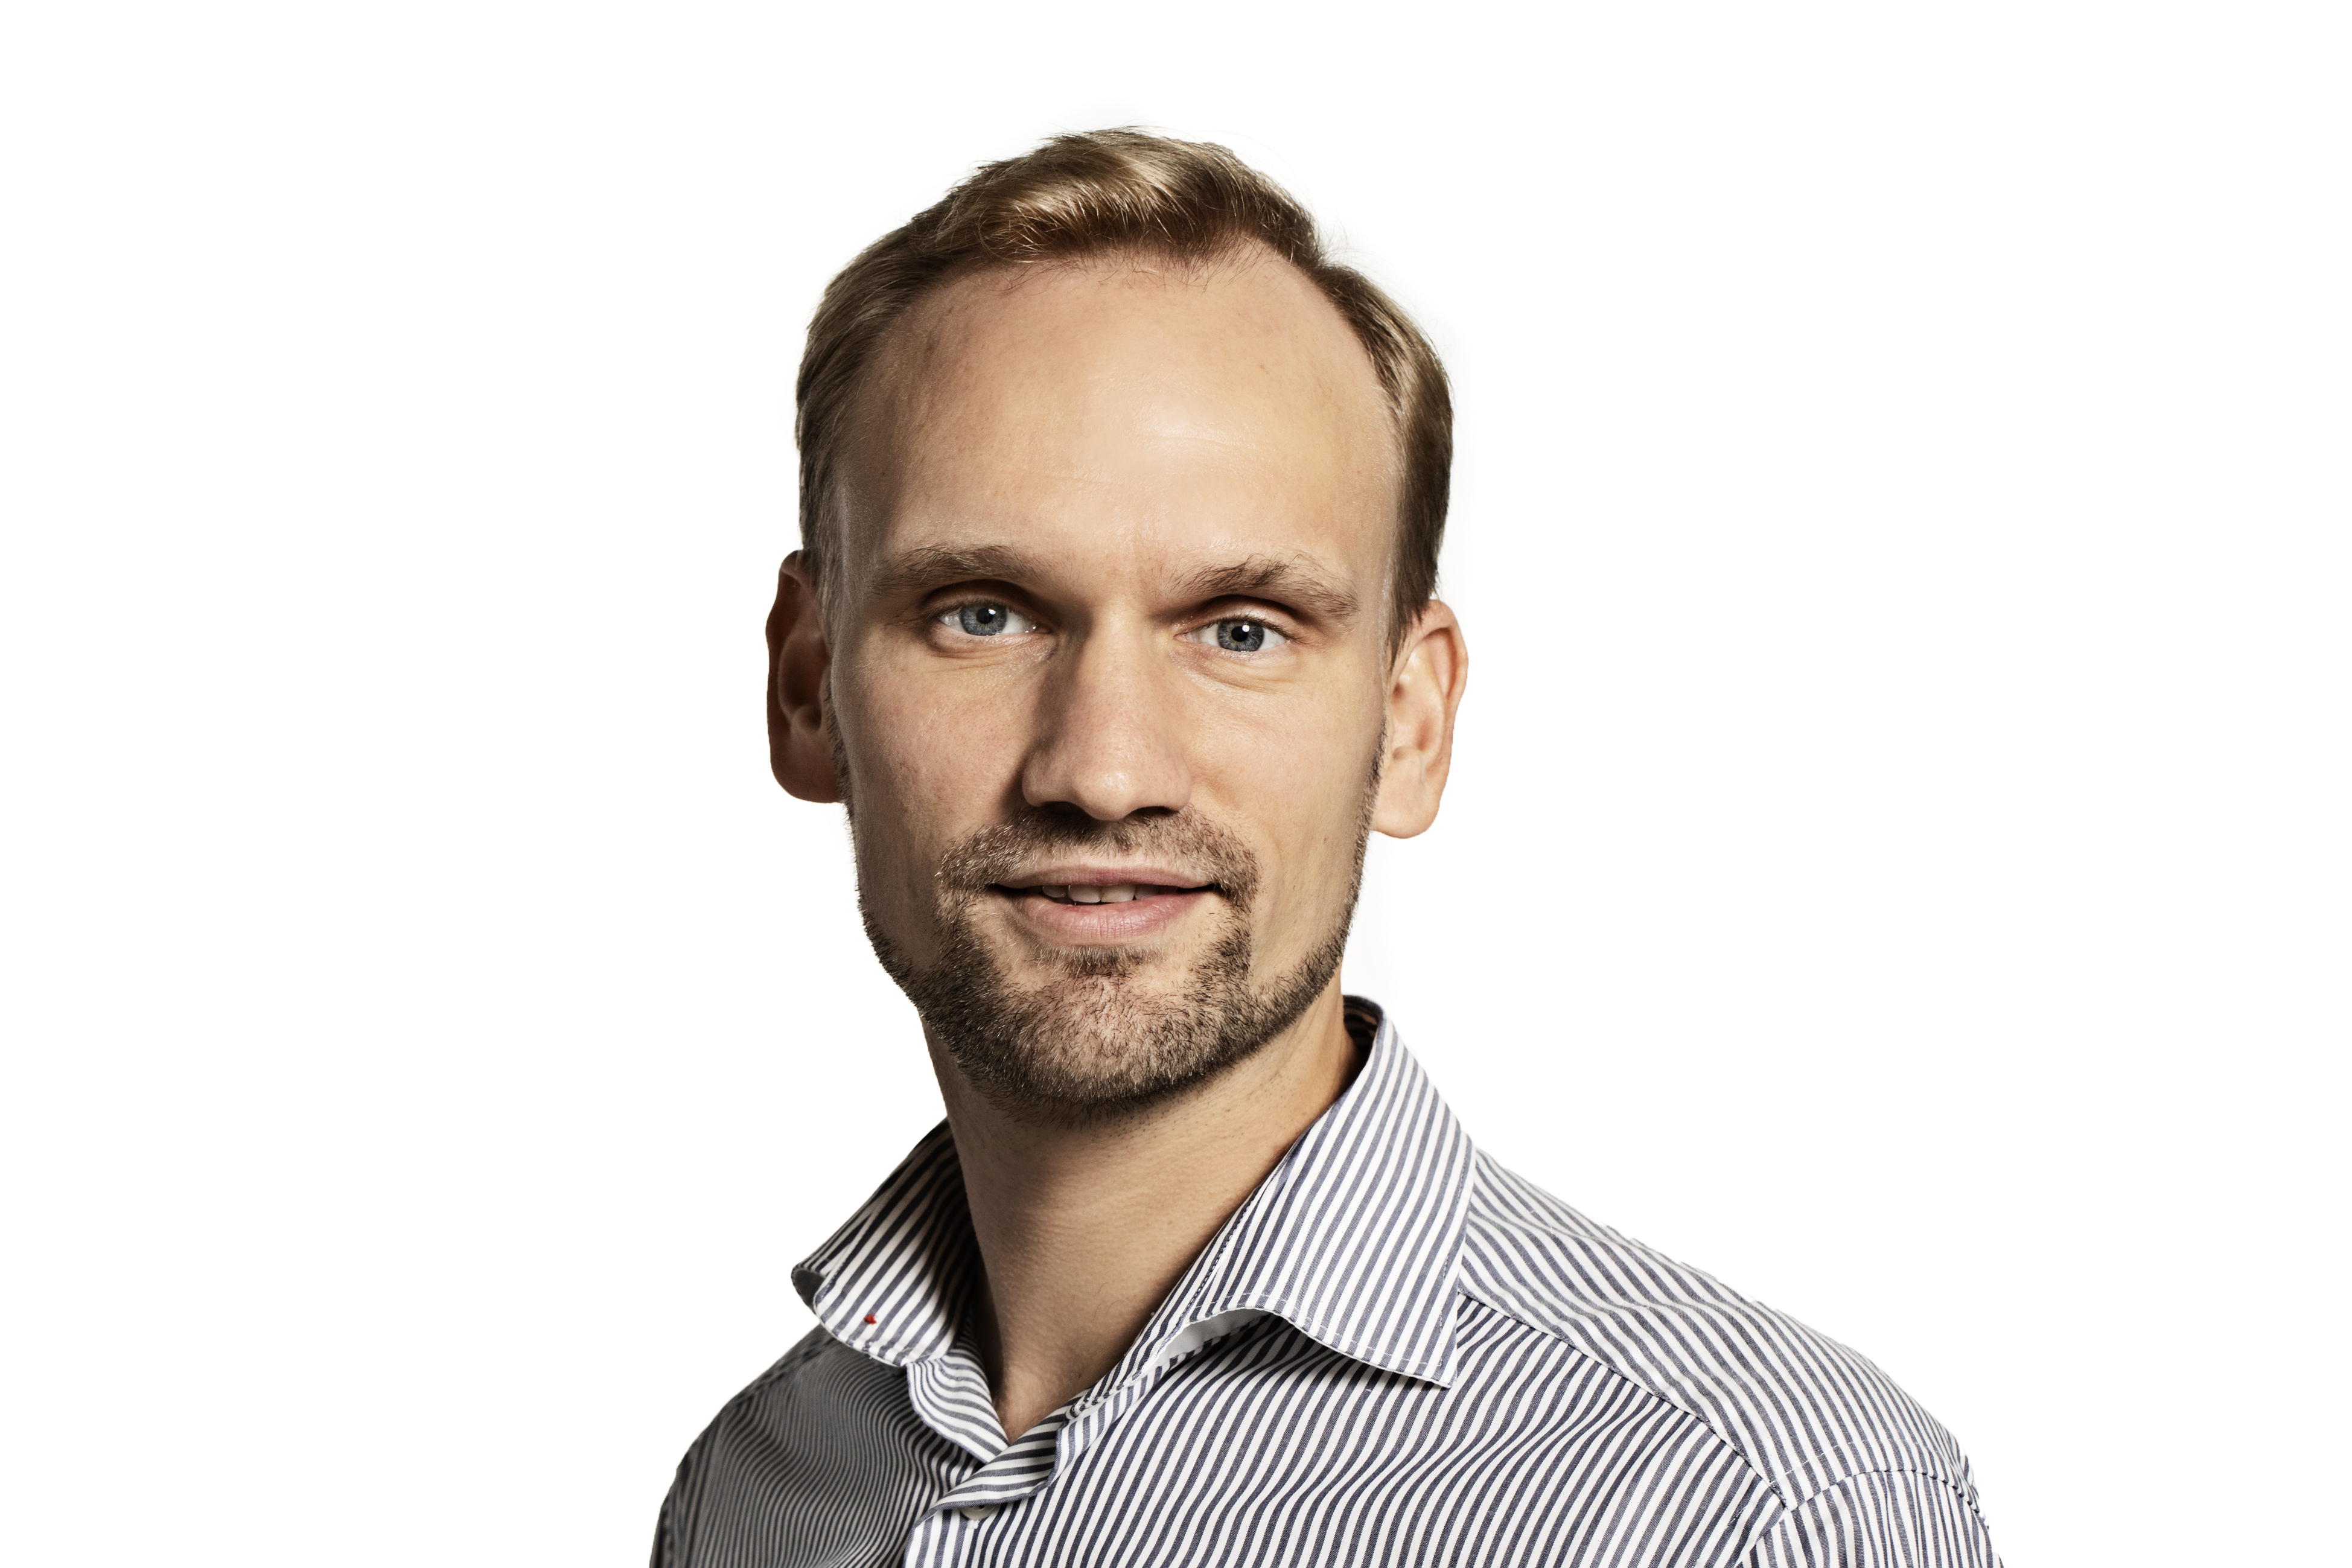 Photo of Matias Thuen Jørgensen